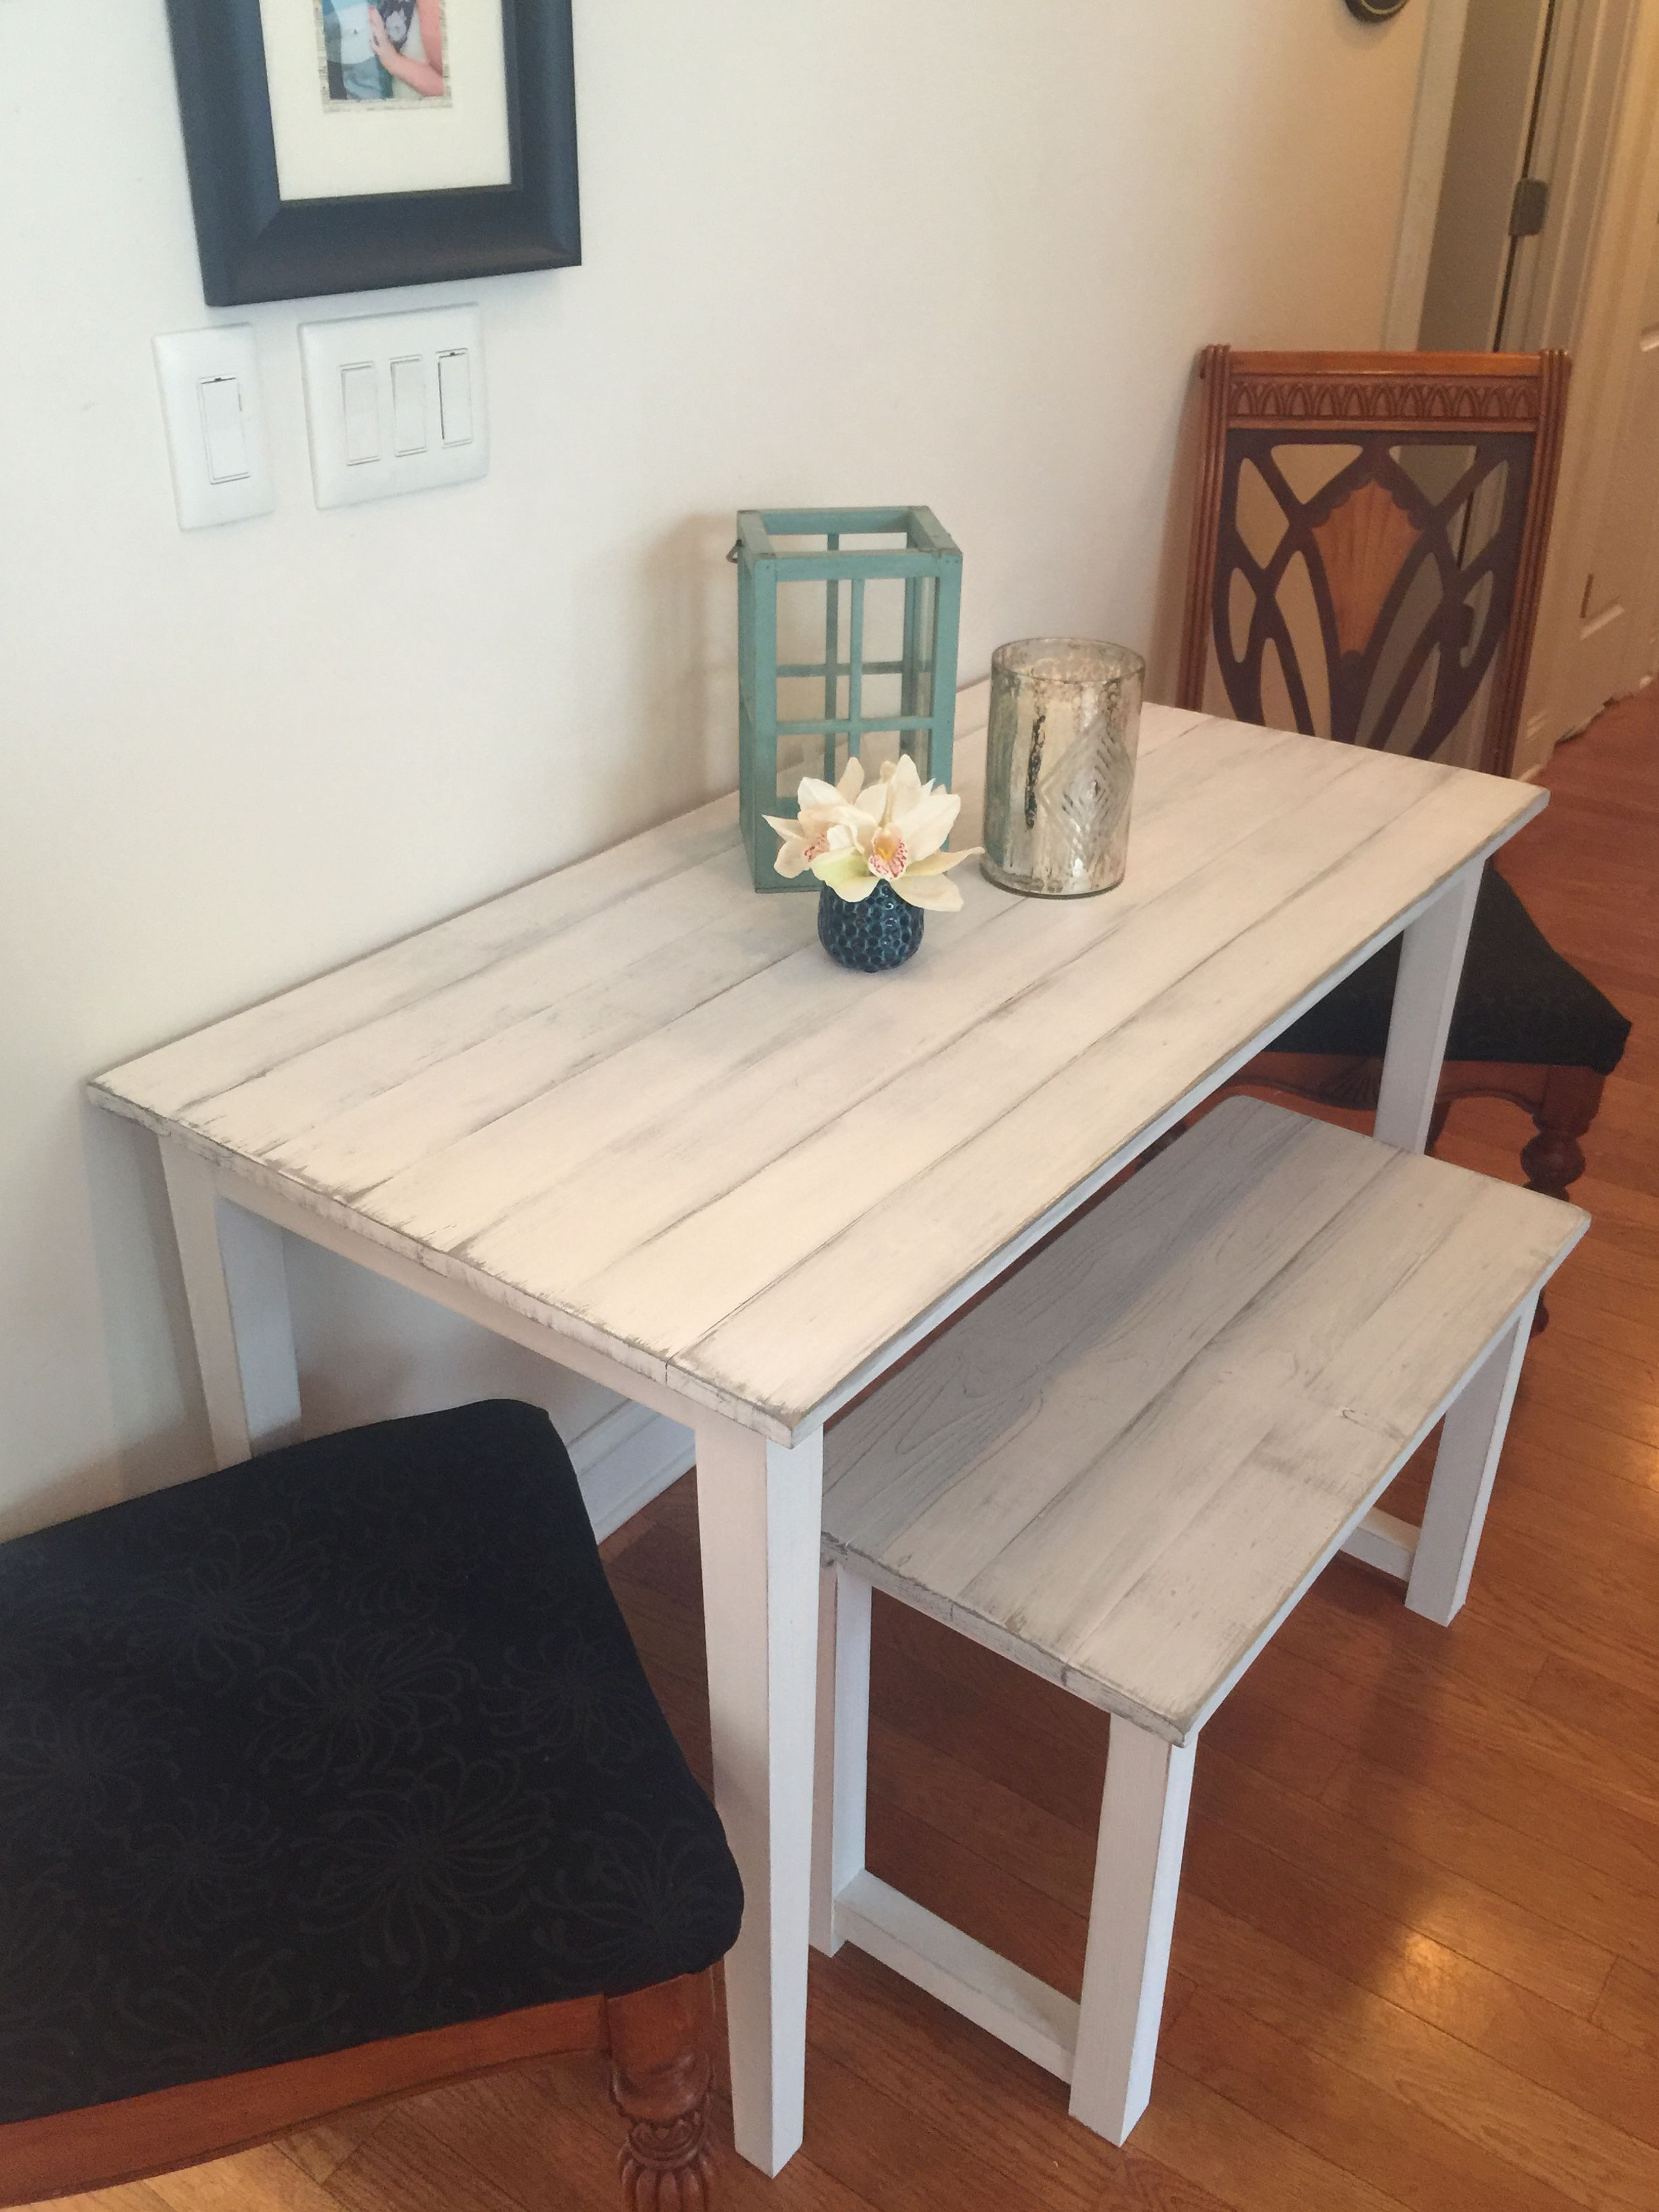 Small farmhouse table for small room bench and distressed white washed wood decorating a small space